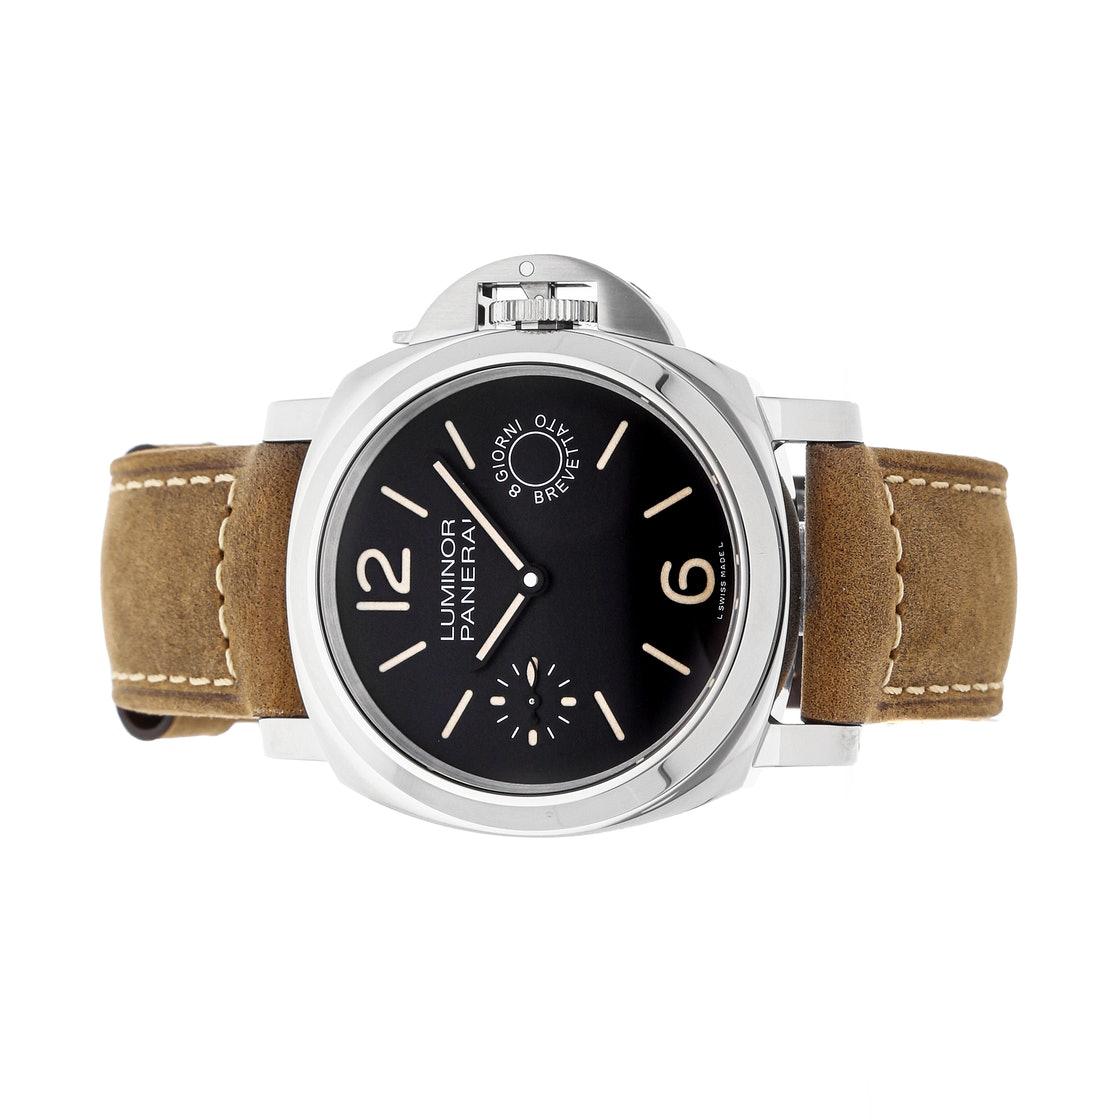 Panerai Luminor Marina 8-Days Acciaio PAM 590